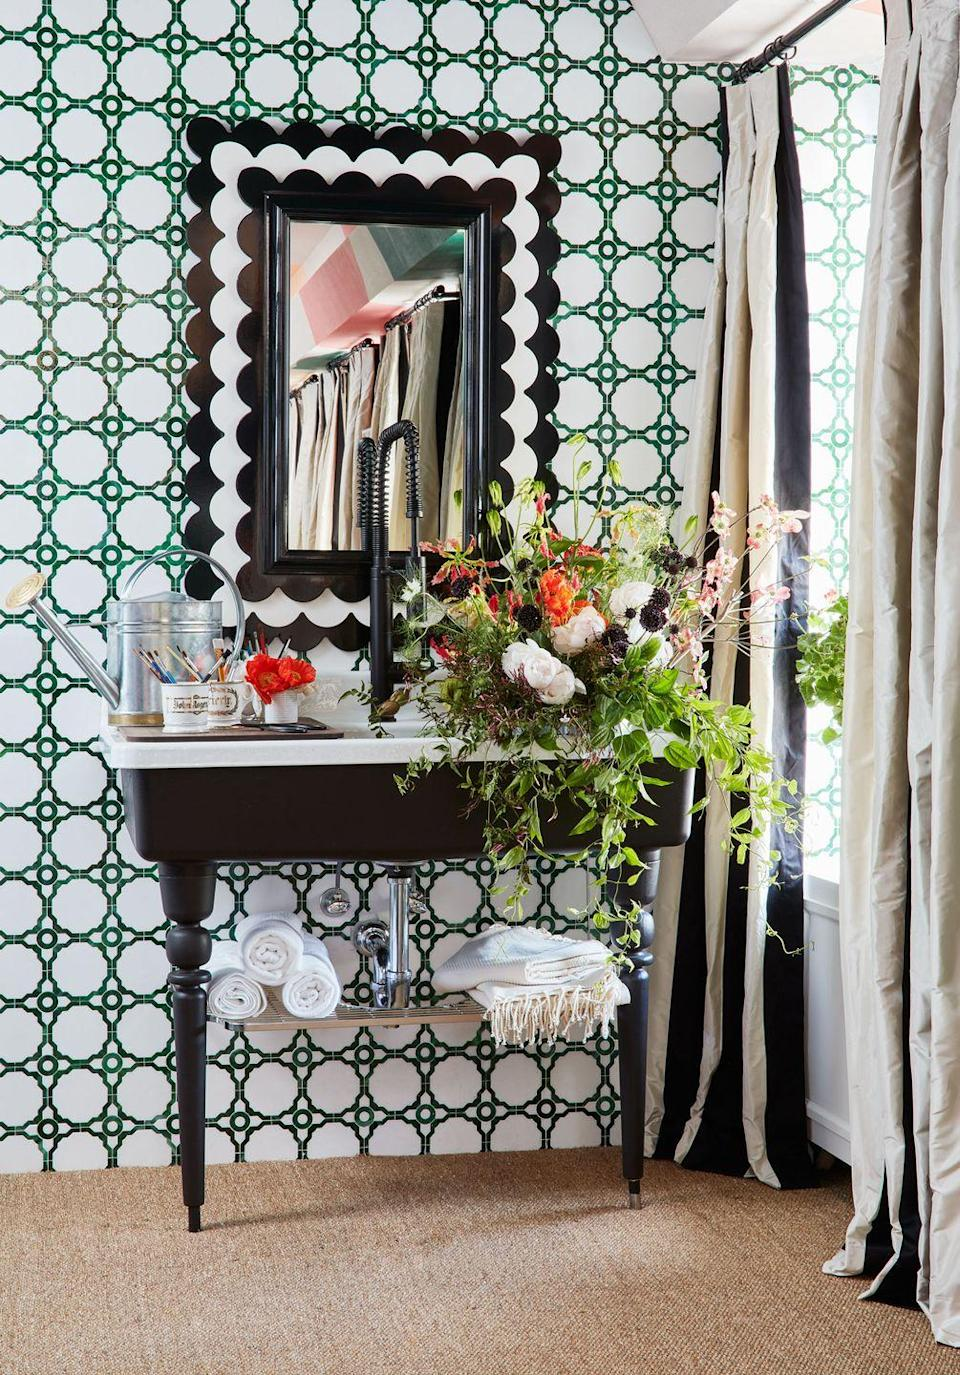 """<p>In her bathroom at the <a href=""""https://www.housebeautiful.com/design-inspiration/house-tours/g27334515/kips-bay-showhouse-2019/"""" rel=""""nofollow noopener"""" target=""""_blank"""" data-ylk=""""slk:Kips Bay show house,"""" class=""""link rapid-noclick-resp"""">Kips Bay show house,</a> designer Young Huh created an artful statement using her AKDO tiles in green and white plus a black-and-white mirror and sculptural black sink. Oh, and a bouquet of flowers never hurts! </p>"""